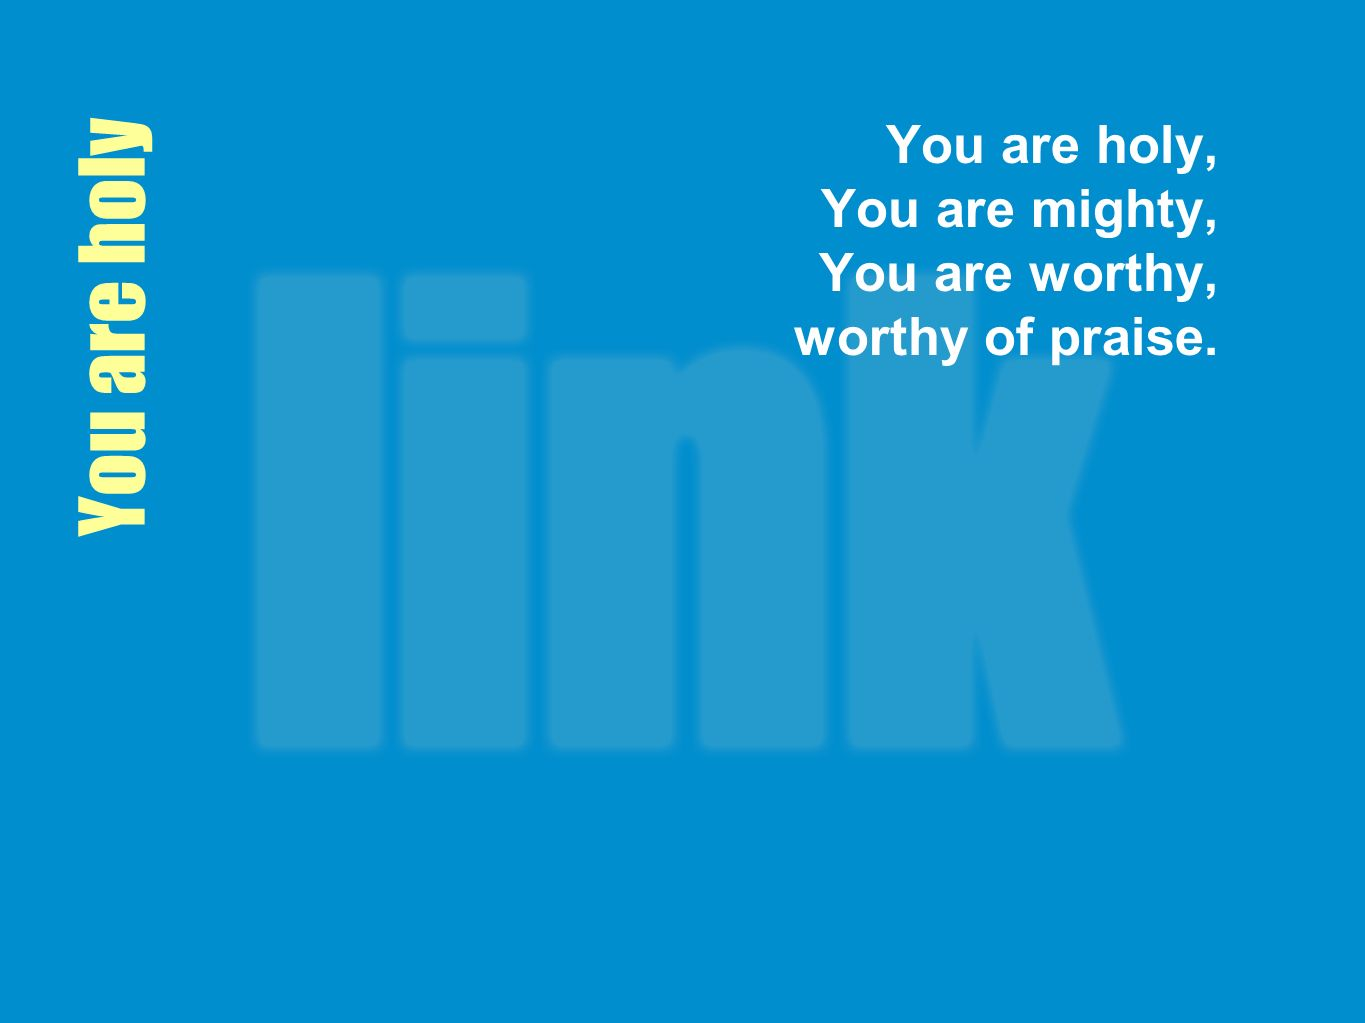 You are holy, You are mighty, You are worthy, worthy of praise.